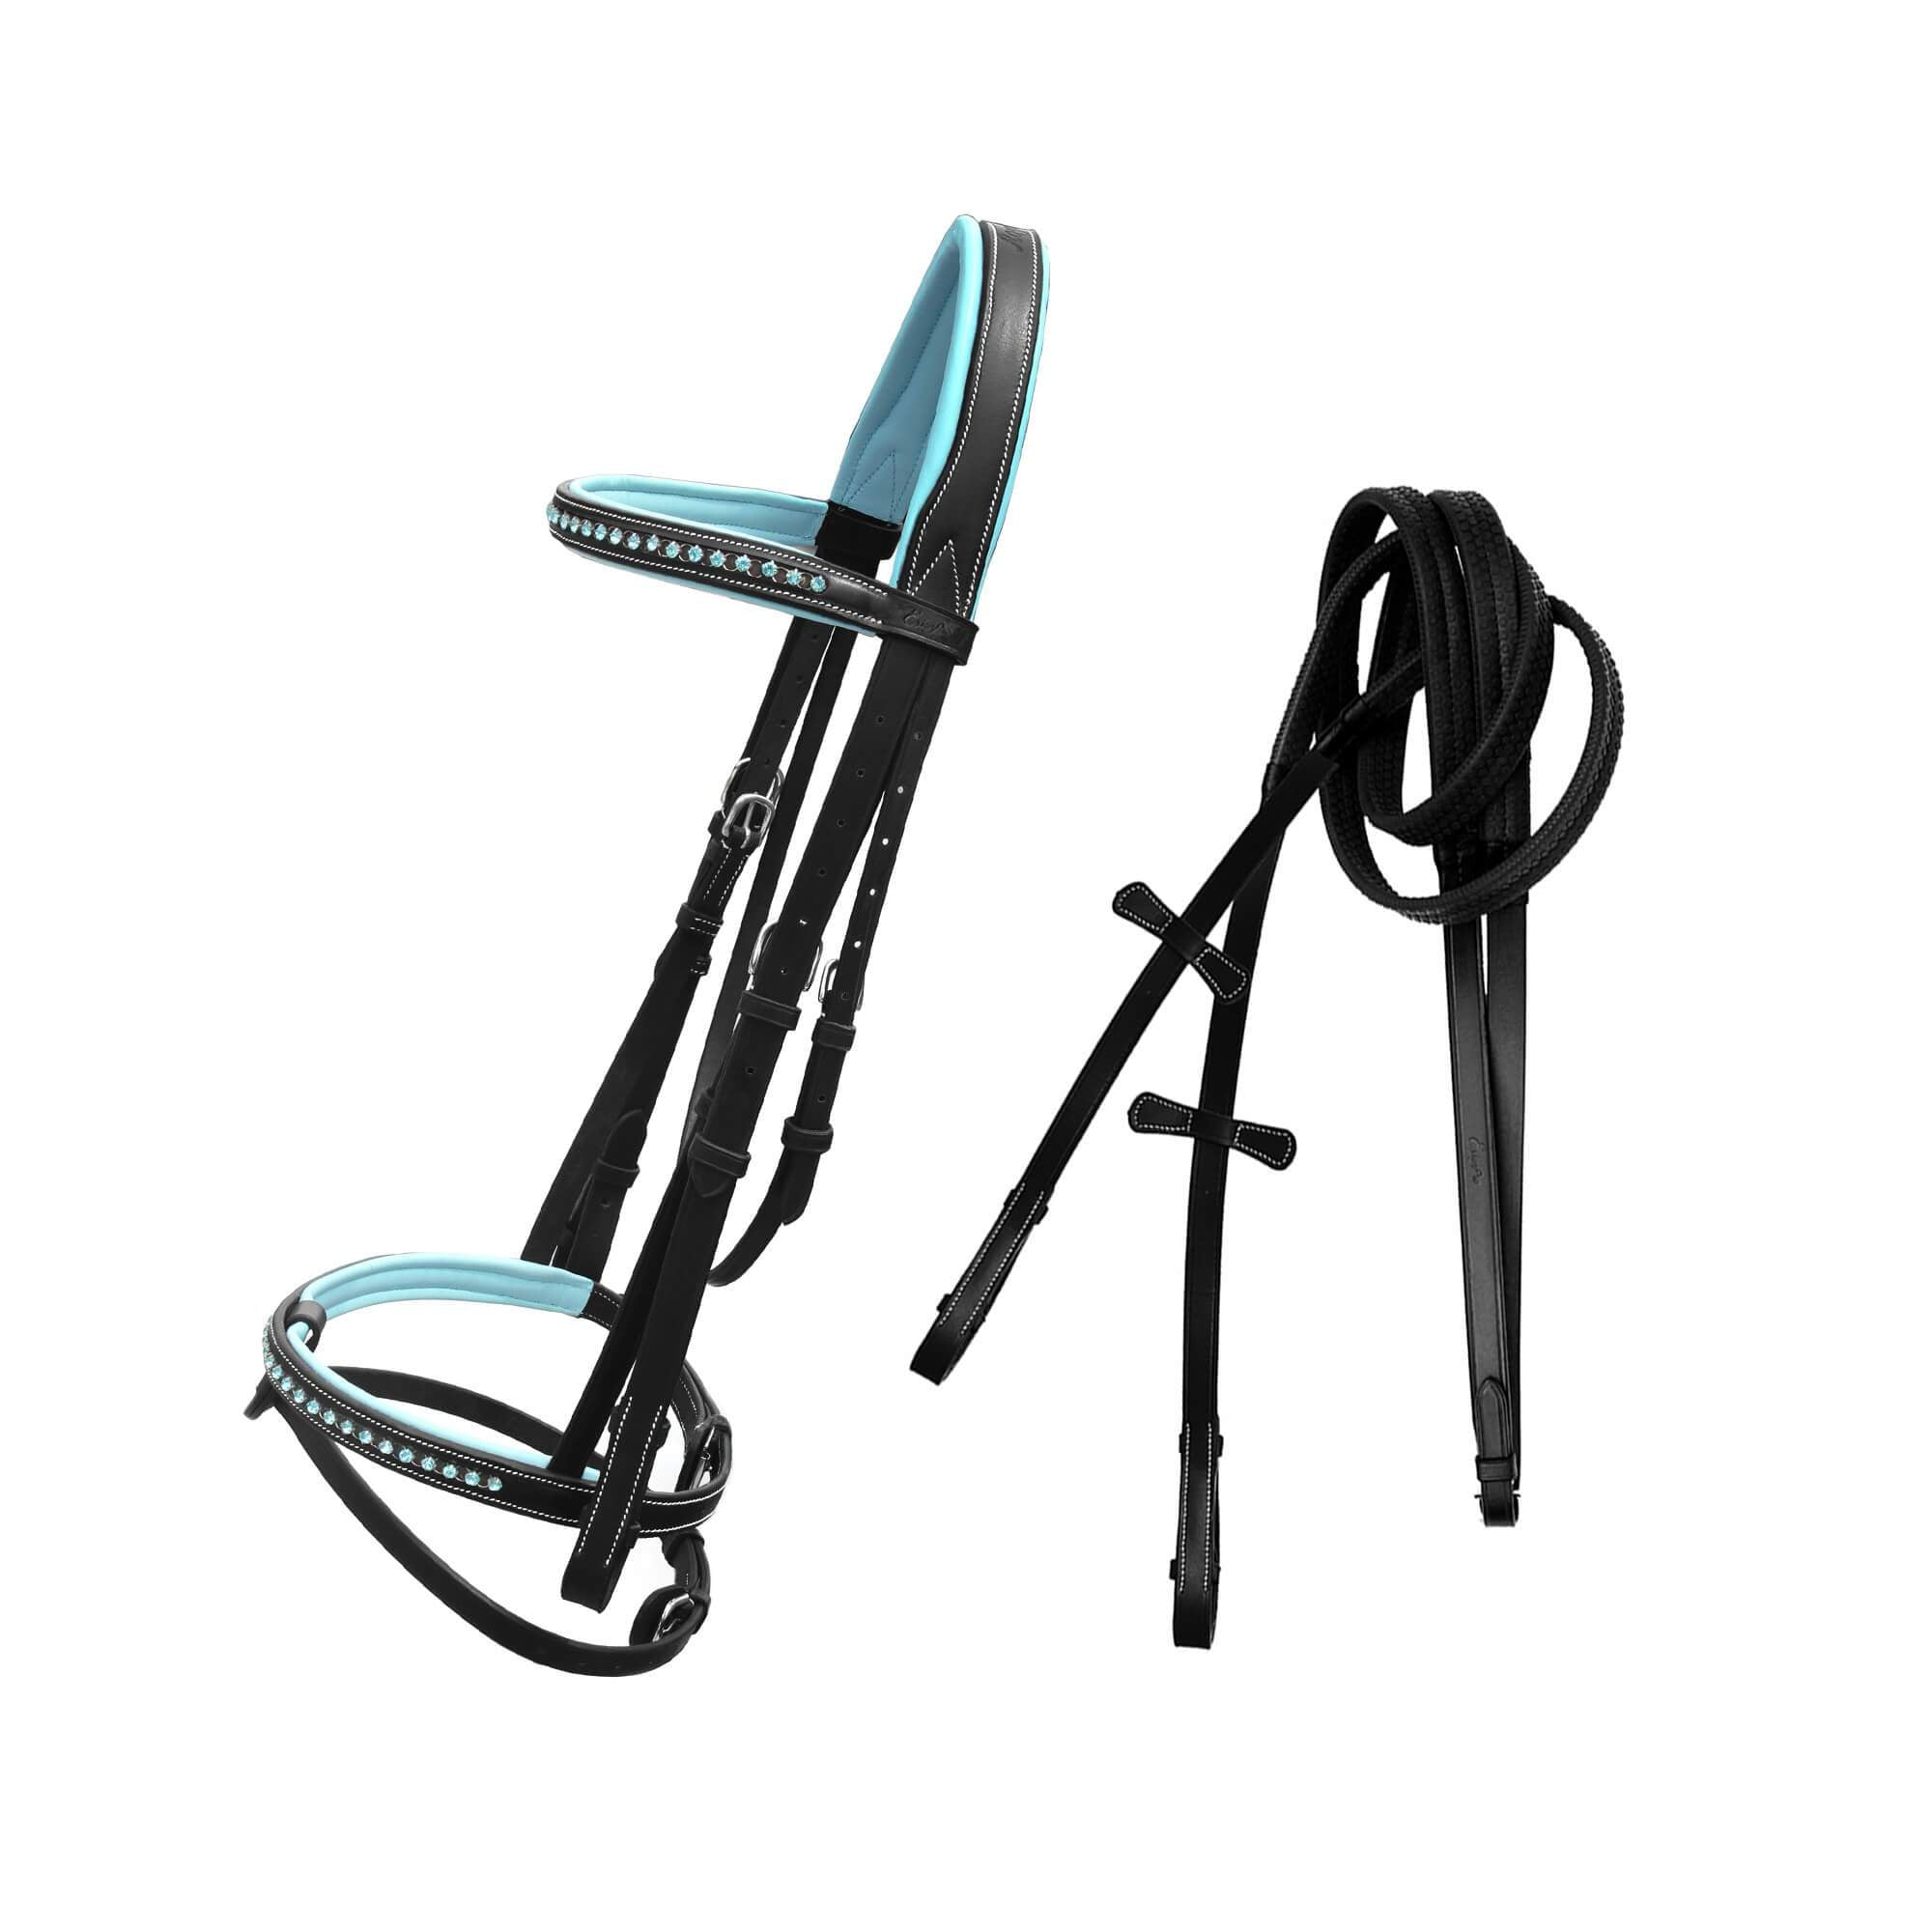 English Bridles-Exionpro Blue Bling Bridle With Baby Blue Padding & Reins-Bridles and Reins